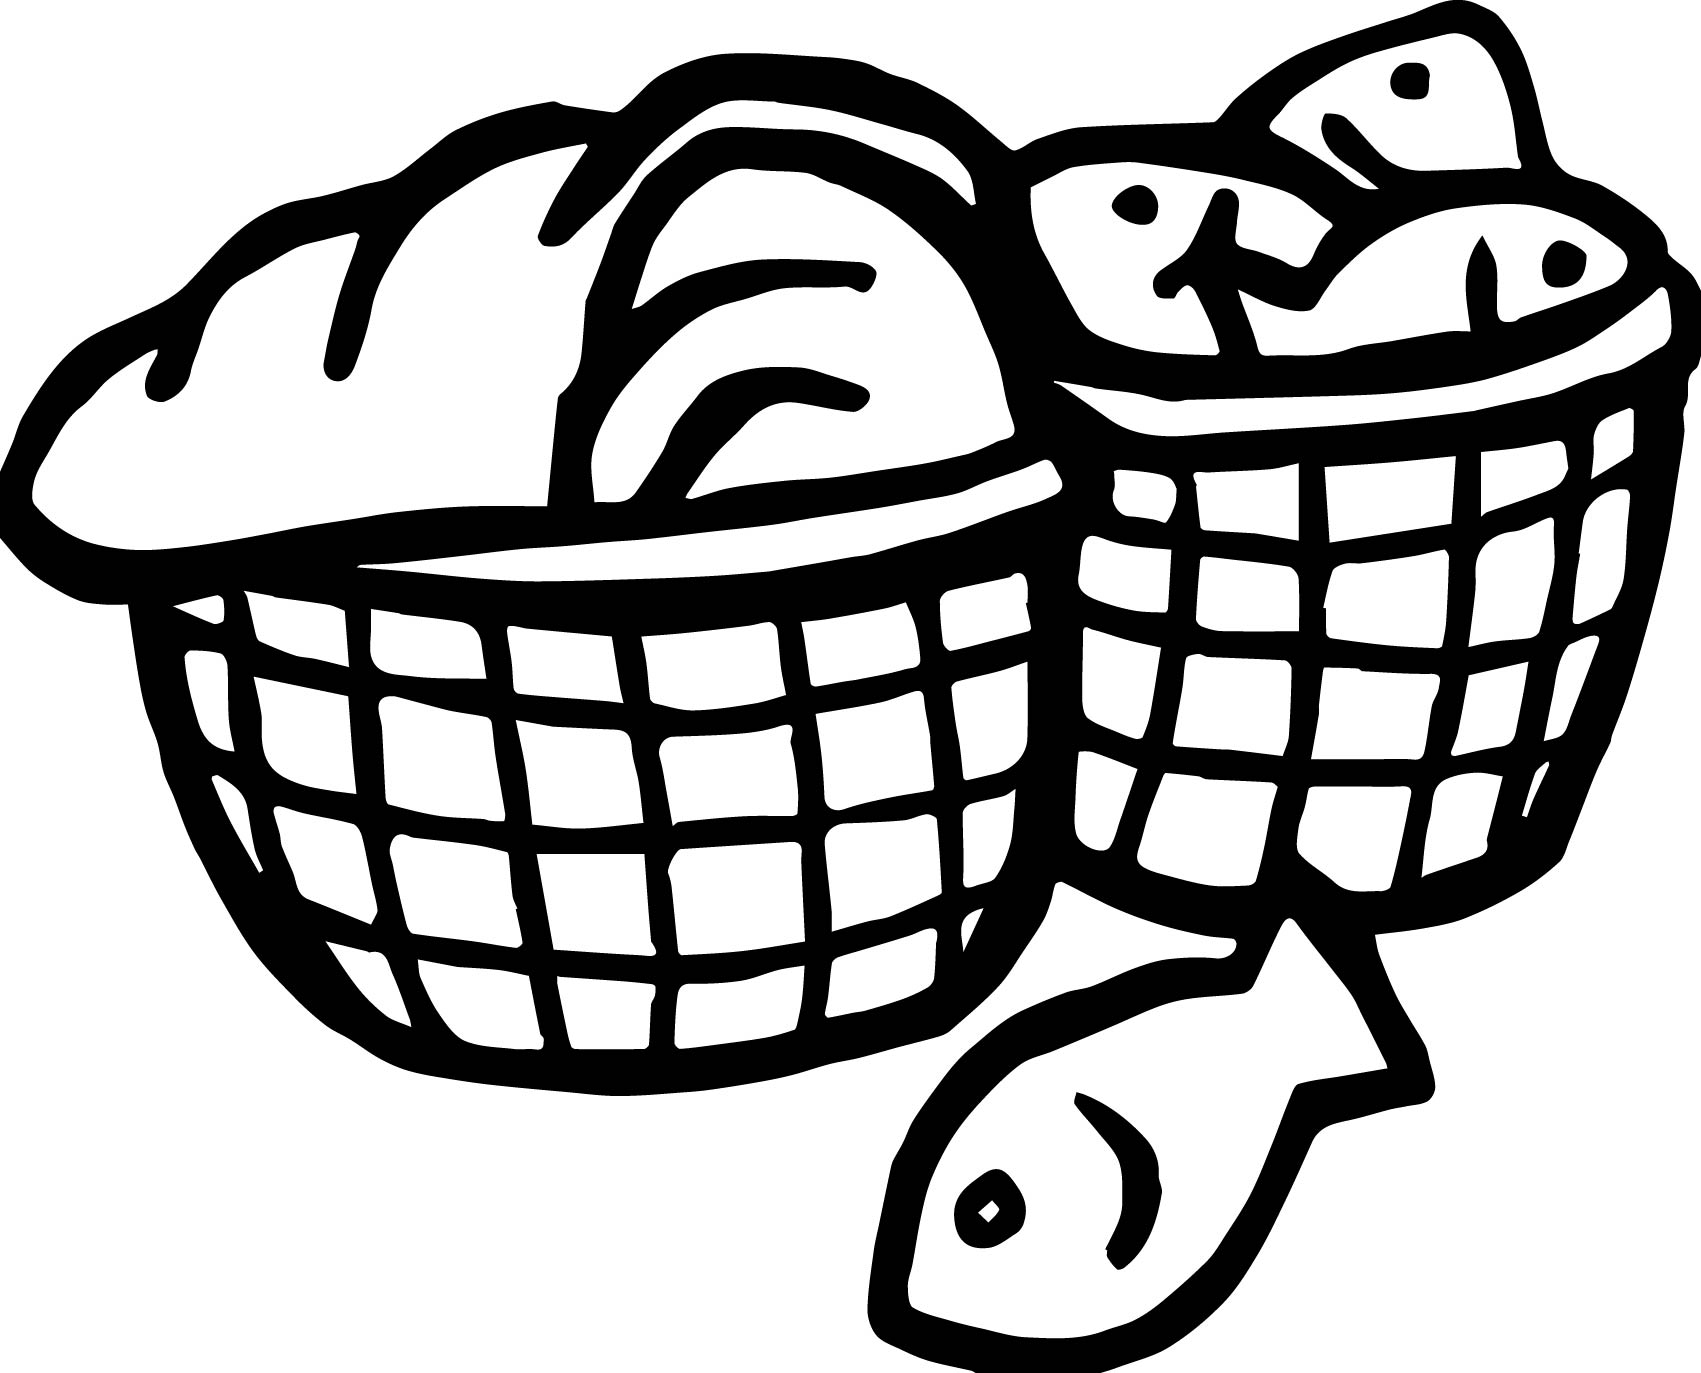 Bread An Fish Basket Adult Coloring Pages